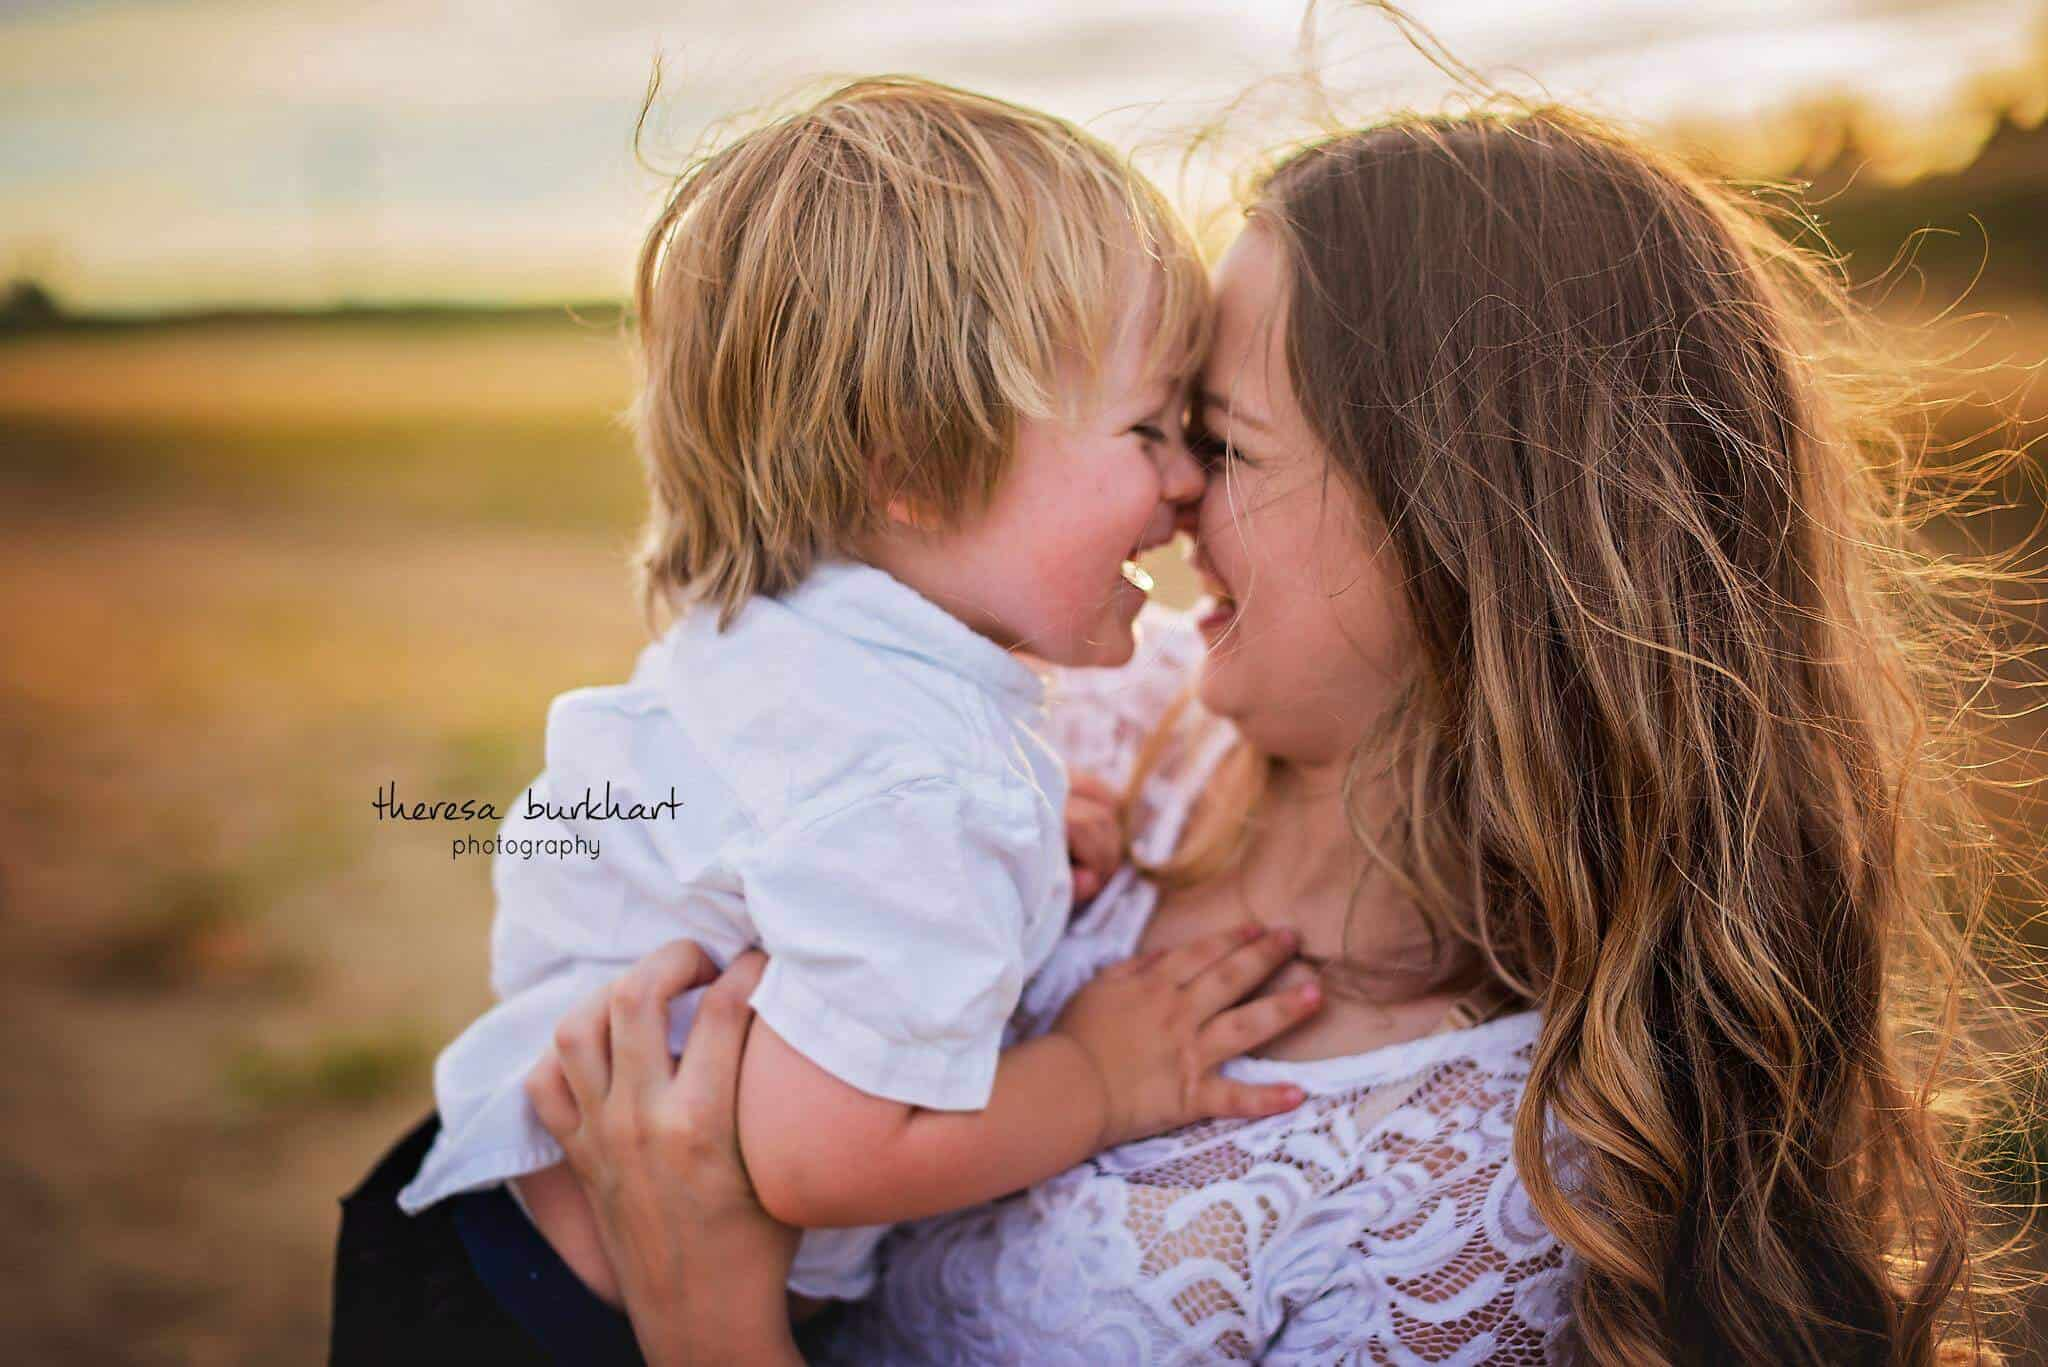 Family photo shoot from Theresa Burkhart Photography